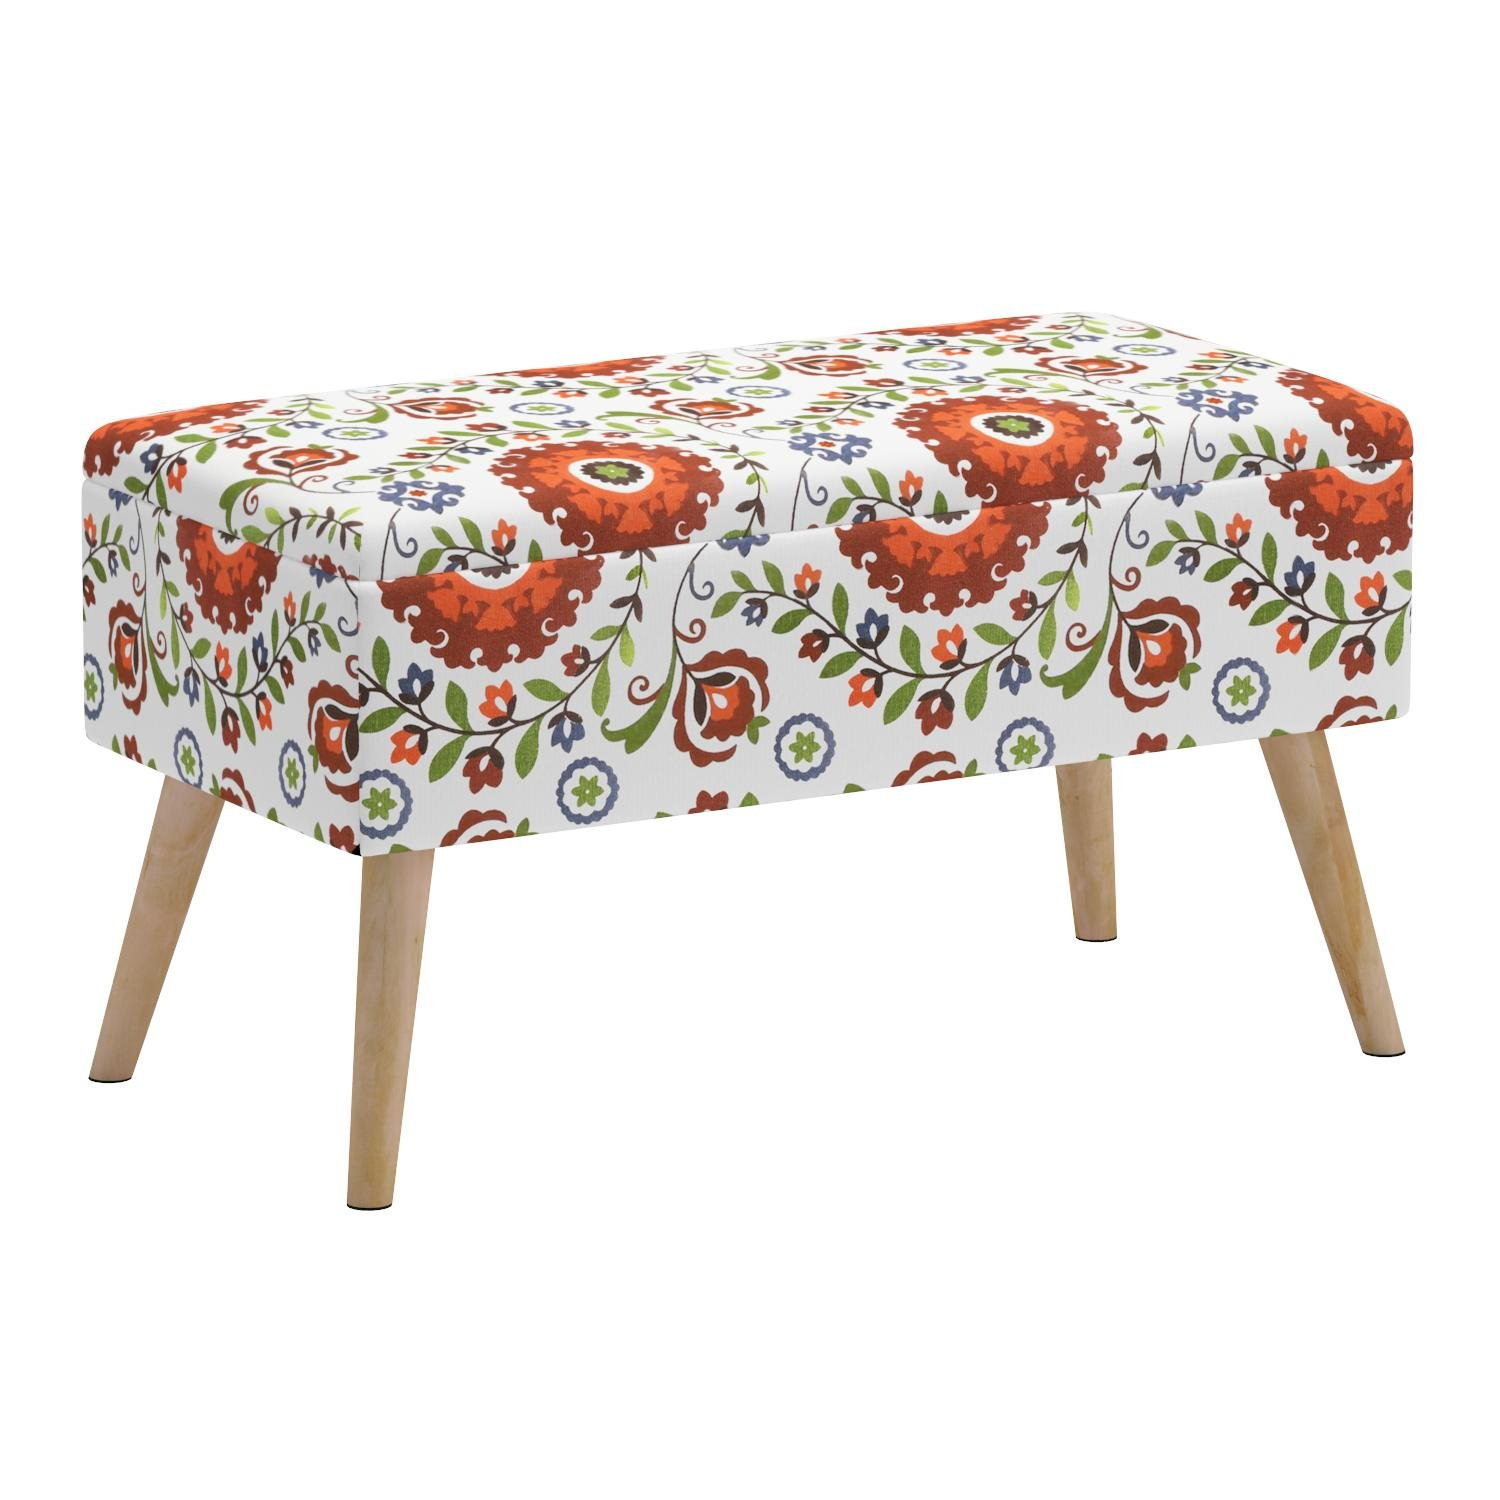 Otto & Ben 30'' Storage Bench - Mid Century Ottoman with Easy Lift Top, Upholstered Shoe Ottomans Seats for Entryway and Bedroom, Retro Floral